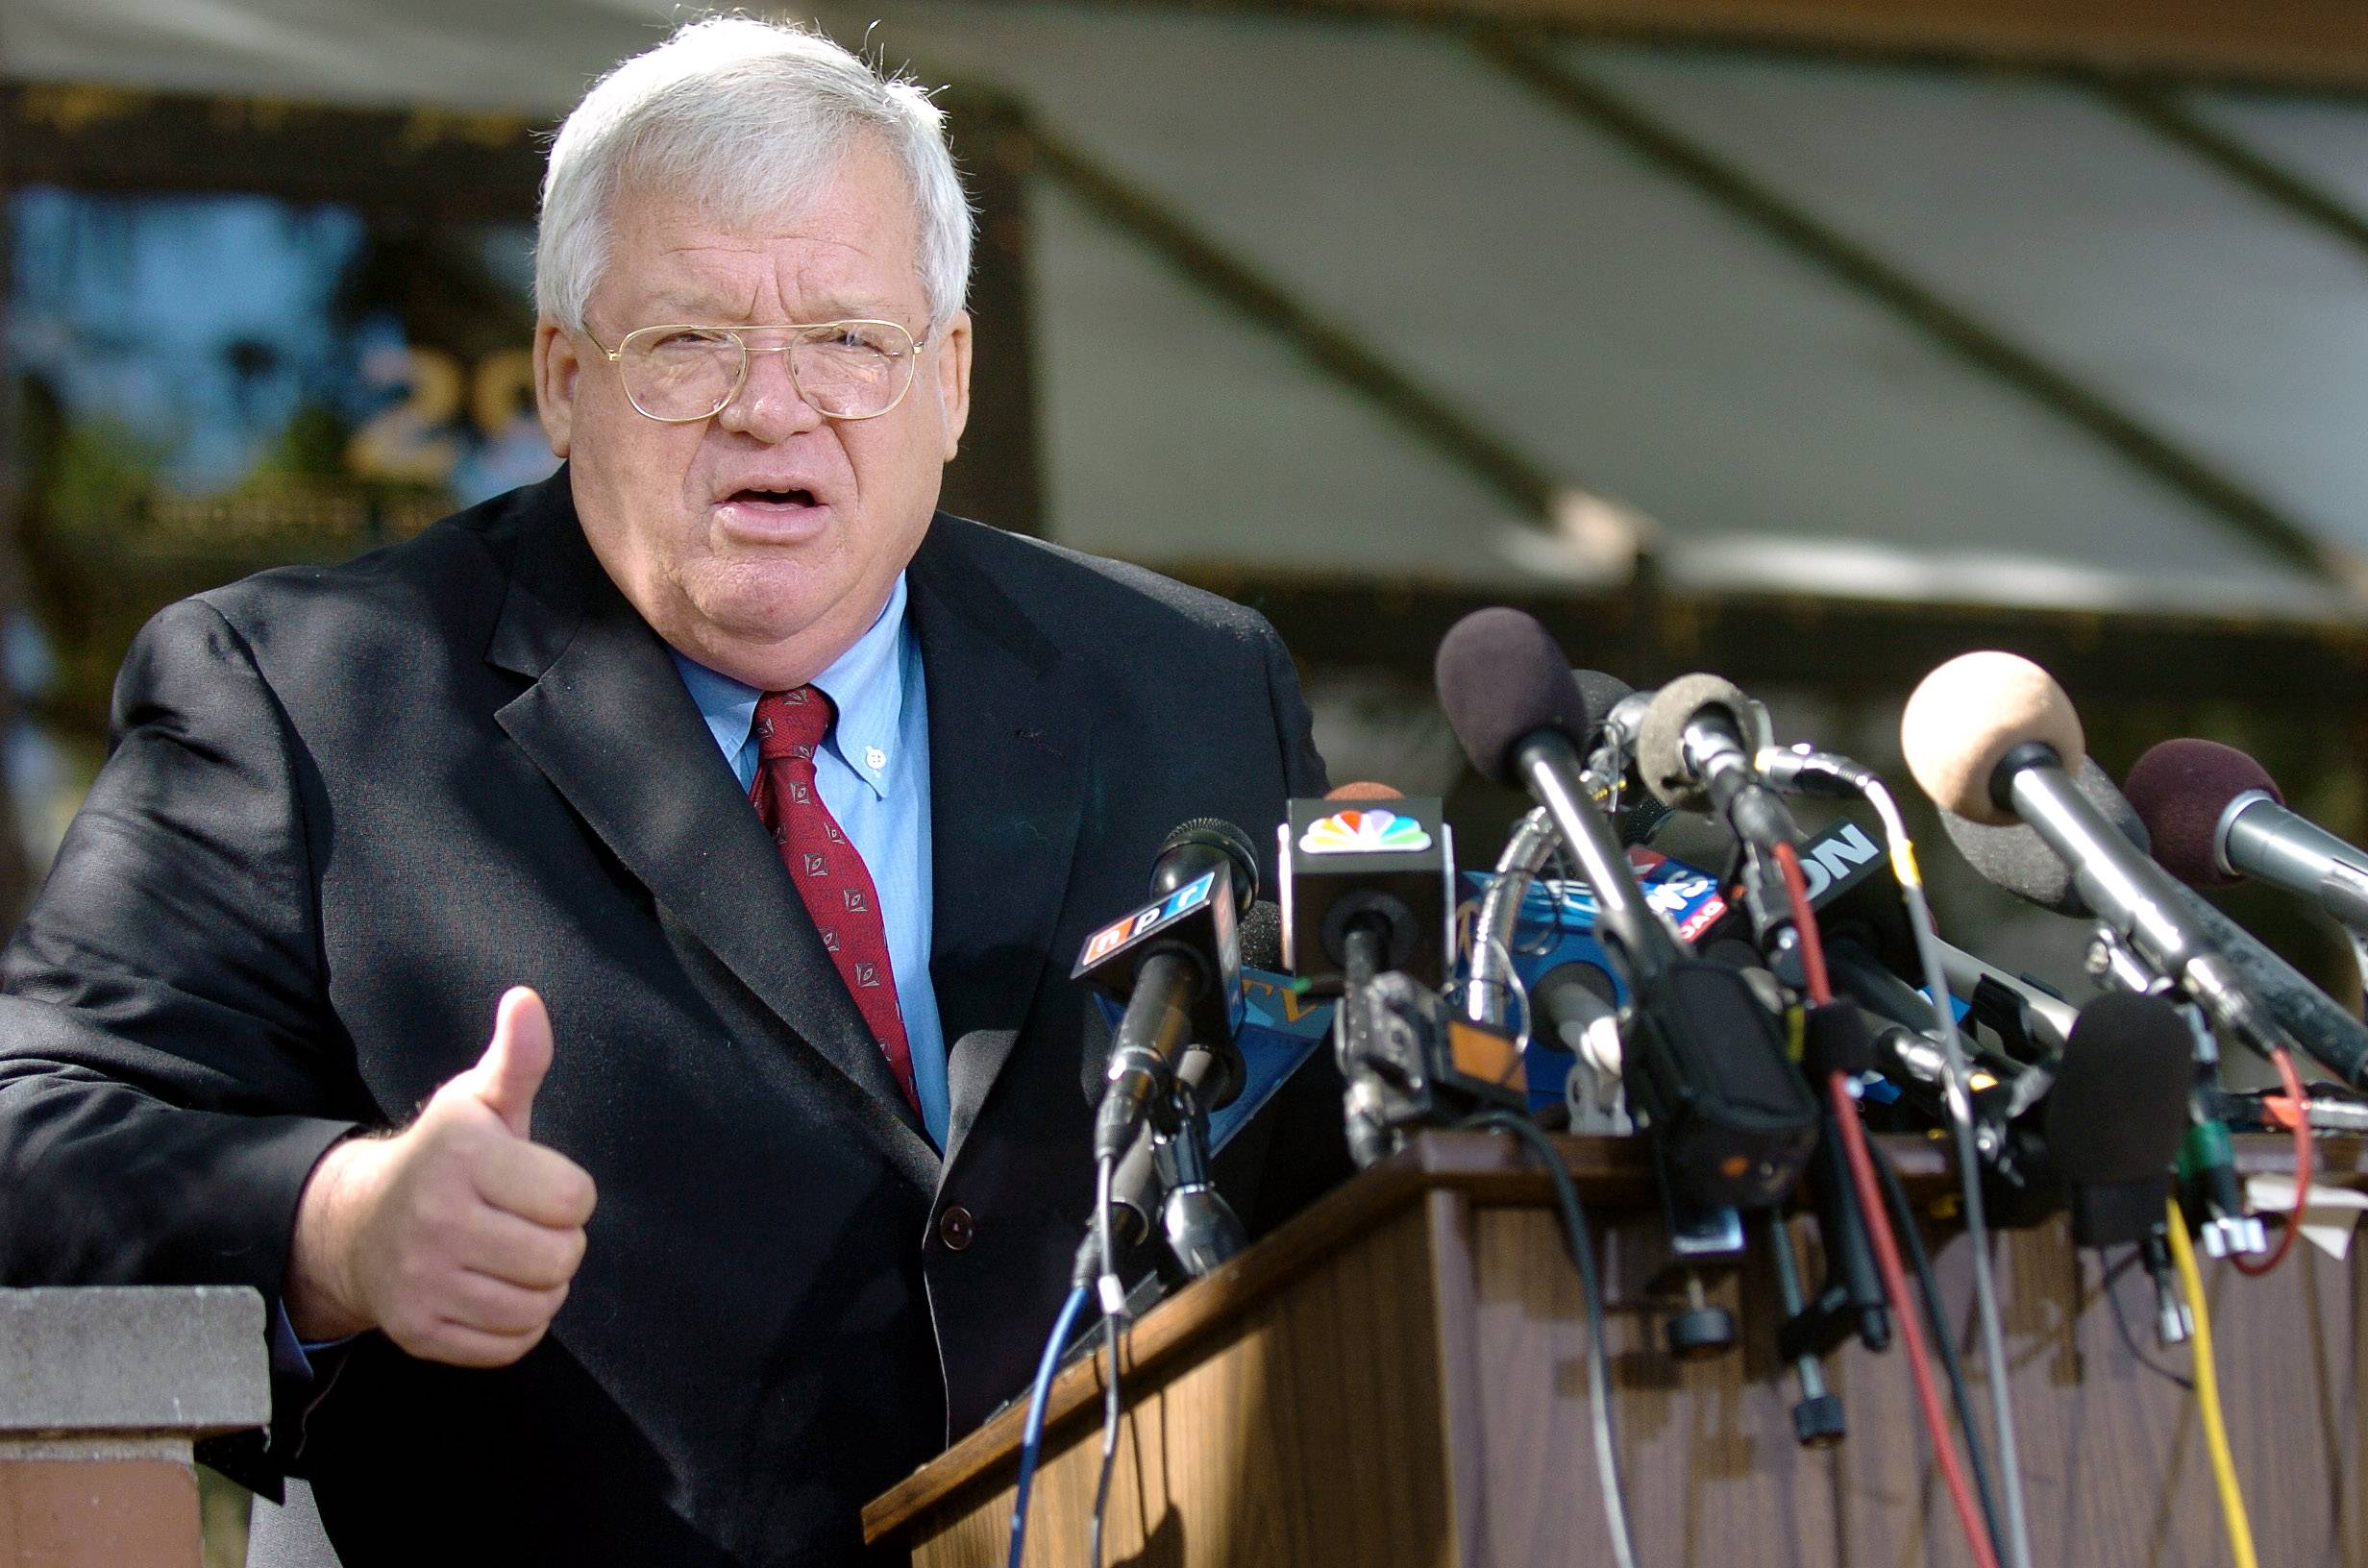 Hastert took responsibility for Mark Foley sex scandal in 2006